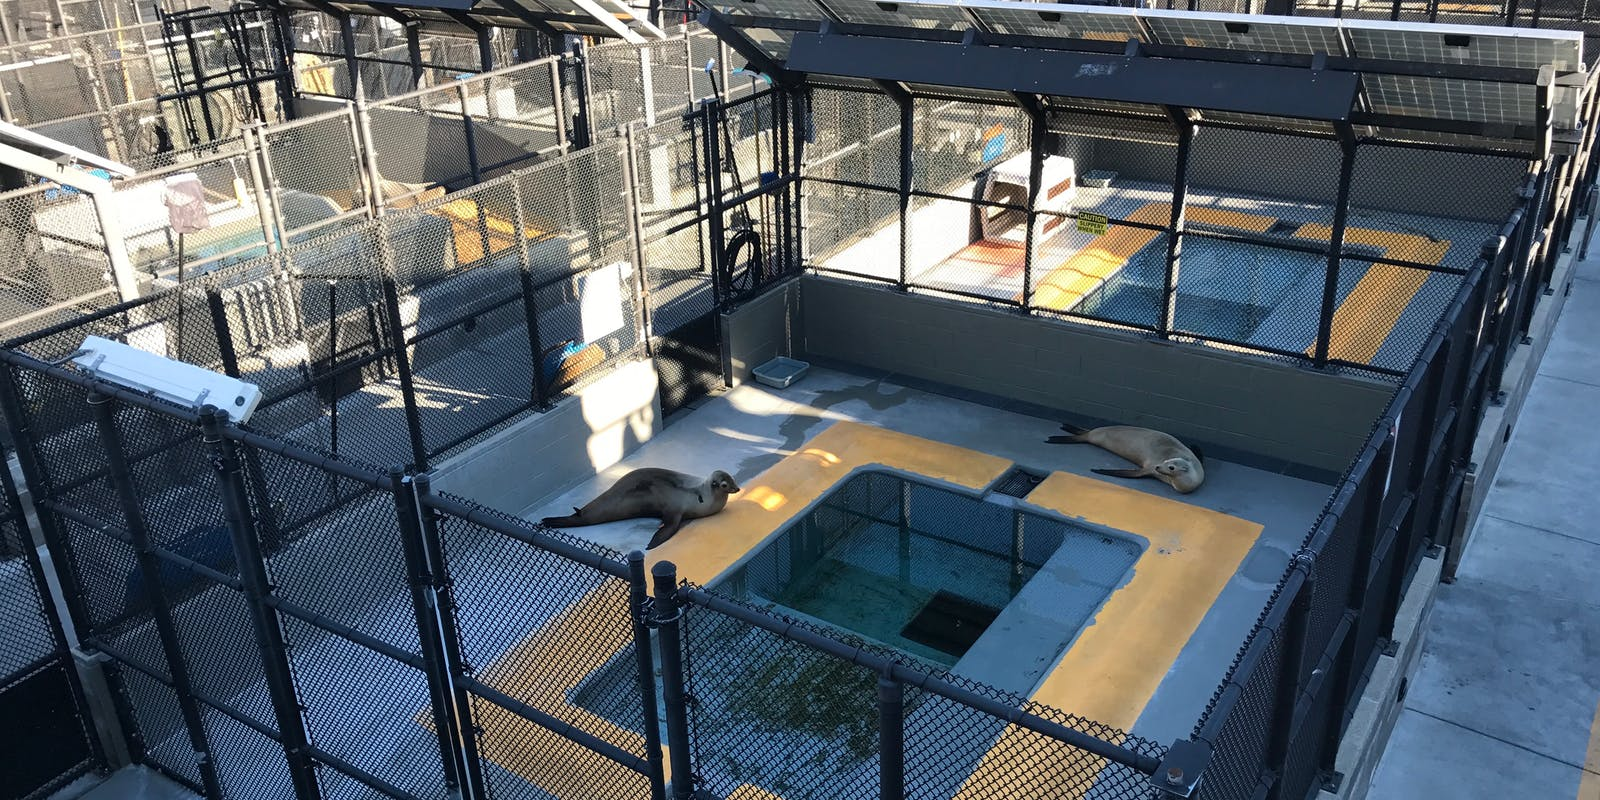 Some patients at the Marine Mammal Center.